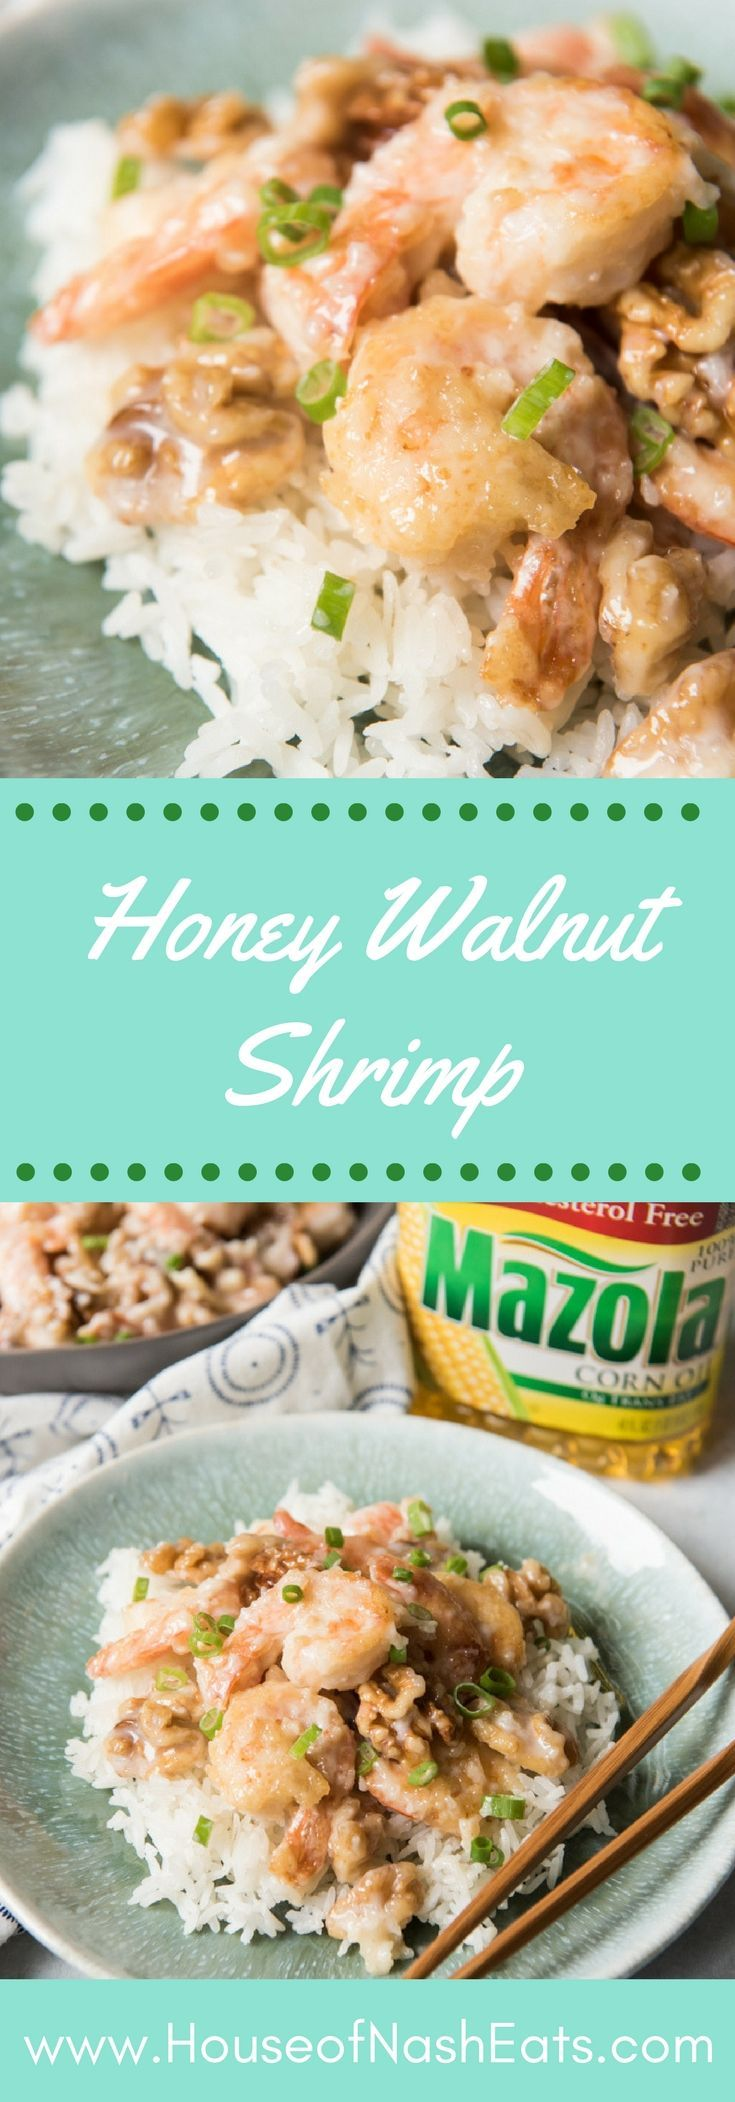 #ad Skip the heavy, greasy takeout and make a better-for-you version of Honey Walnut Shrimp! Crispy shrimp in a sweet, creamy sauce is one of our restaurant favorites made even better at home! #simpleswap #chinese #takeout #shrimp #walnuts #dinner #asian